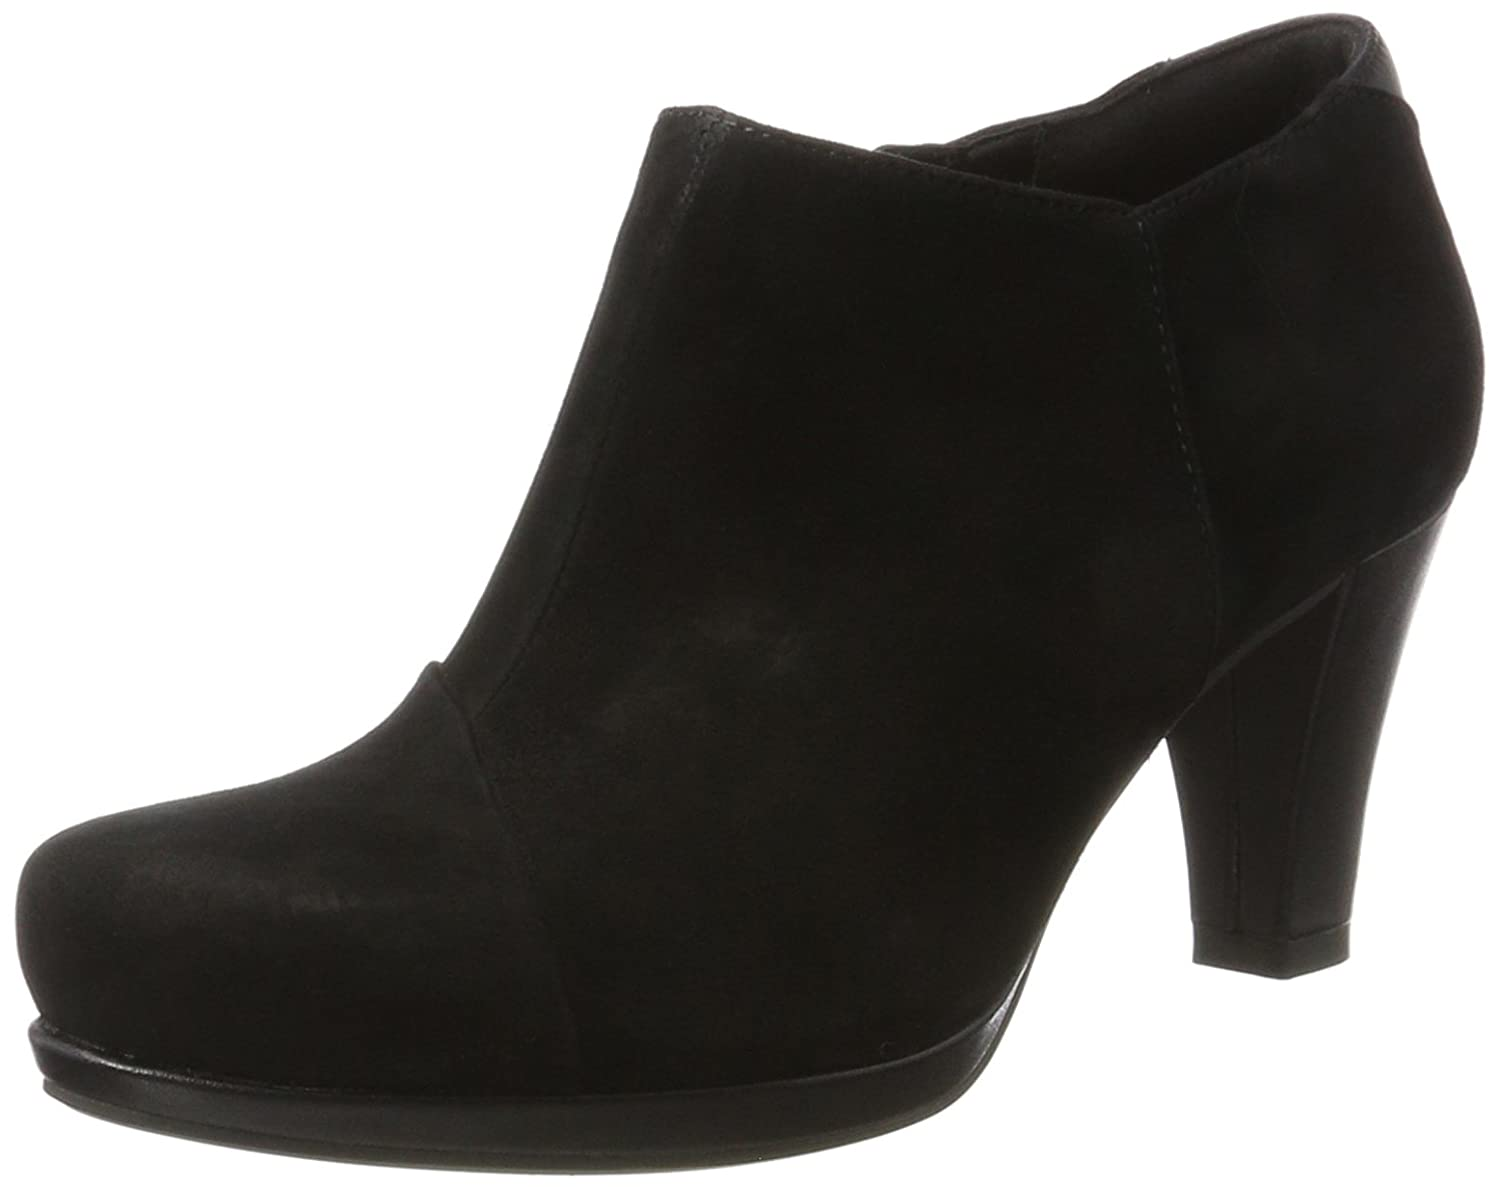 Clarks Chorus Clarks Jingle, (Black 40.5 Bottes Femme, Noir, 40.5 EU Noir (Black Sde) 754b26a - piero.space